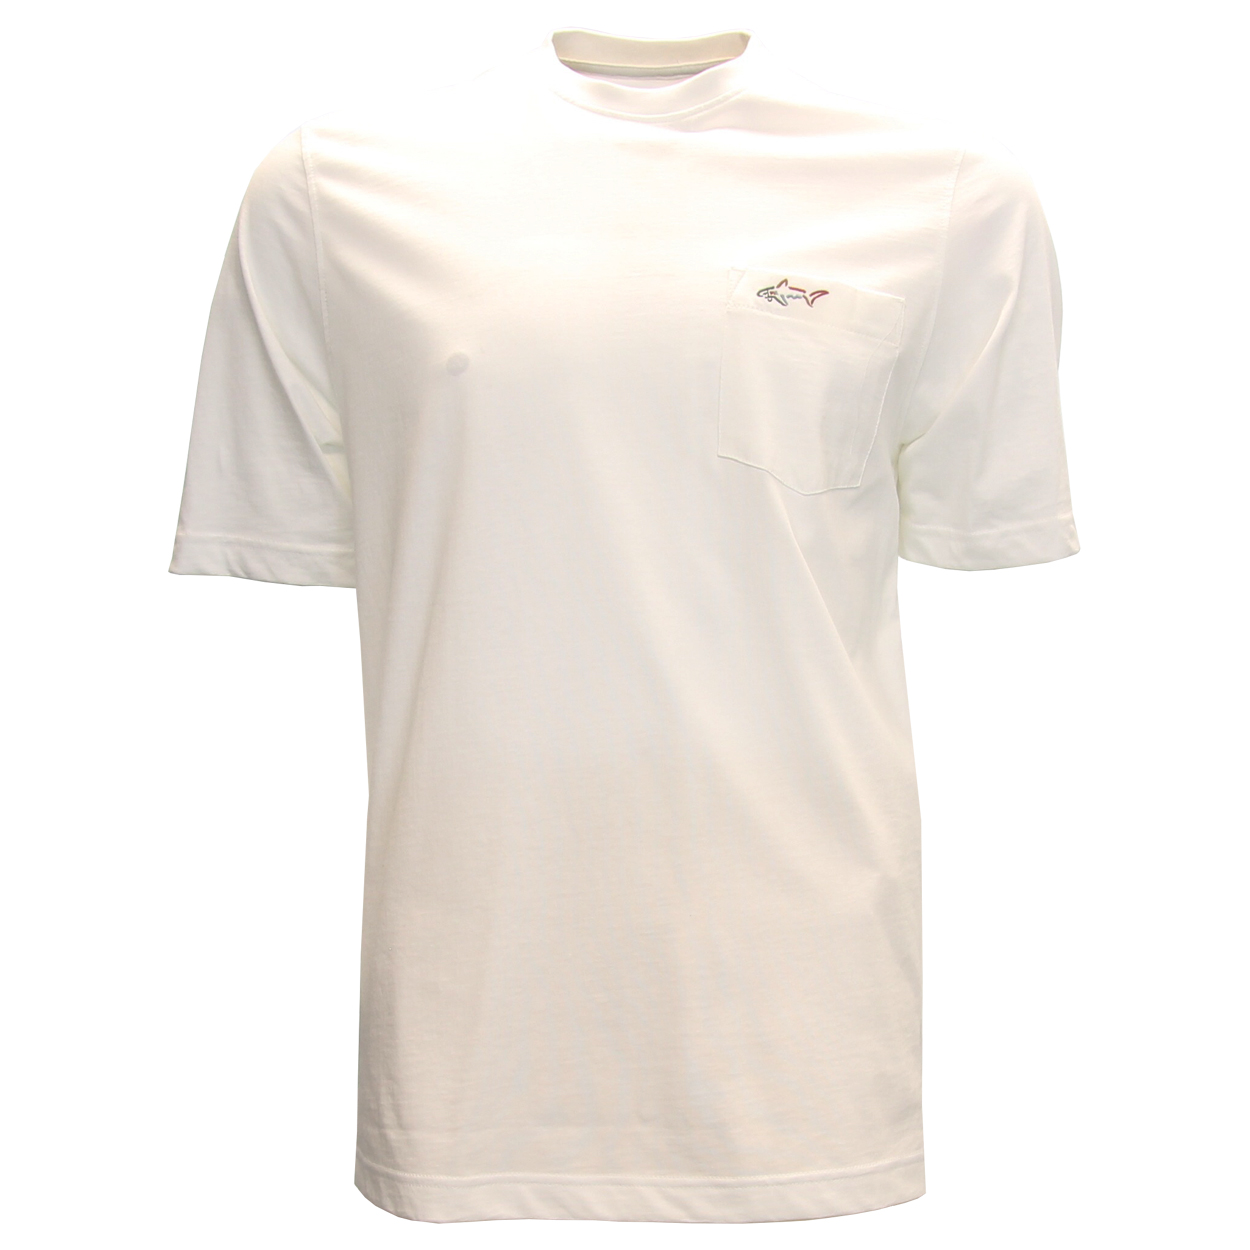 Greg Norman Lux Shark T-Shirt *Closeout*